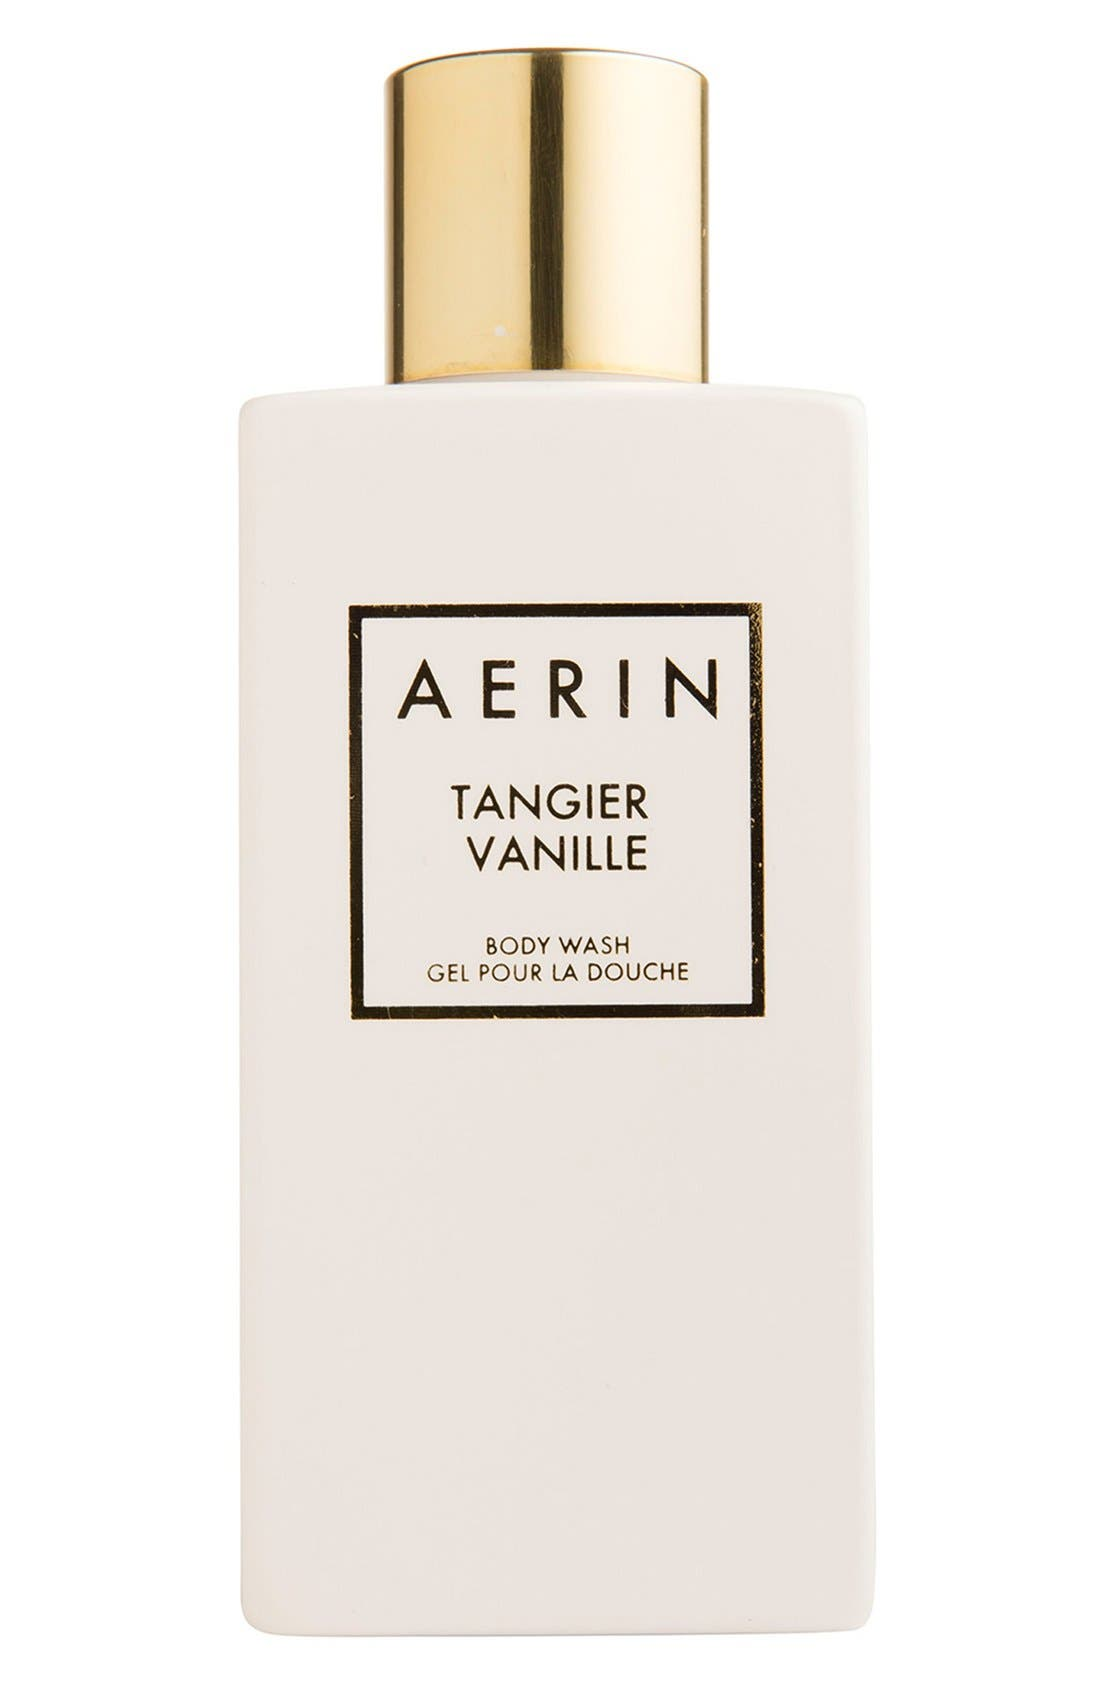 AERIN Beauty Tangier Vanille Body Wash,                         Main,                         color, 000